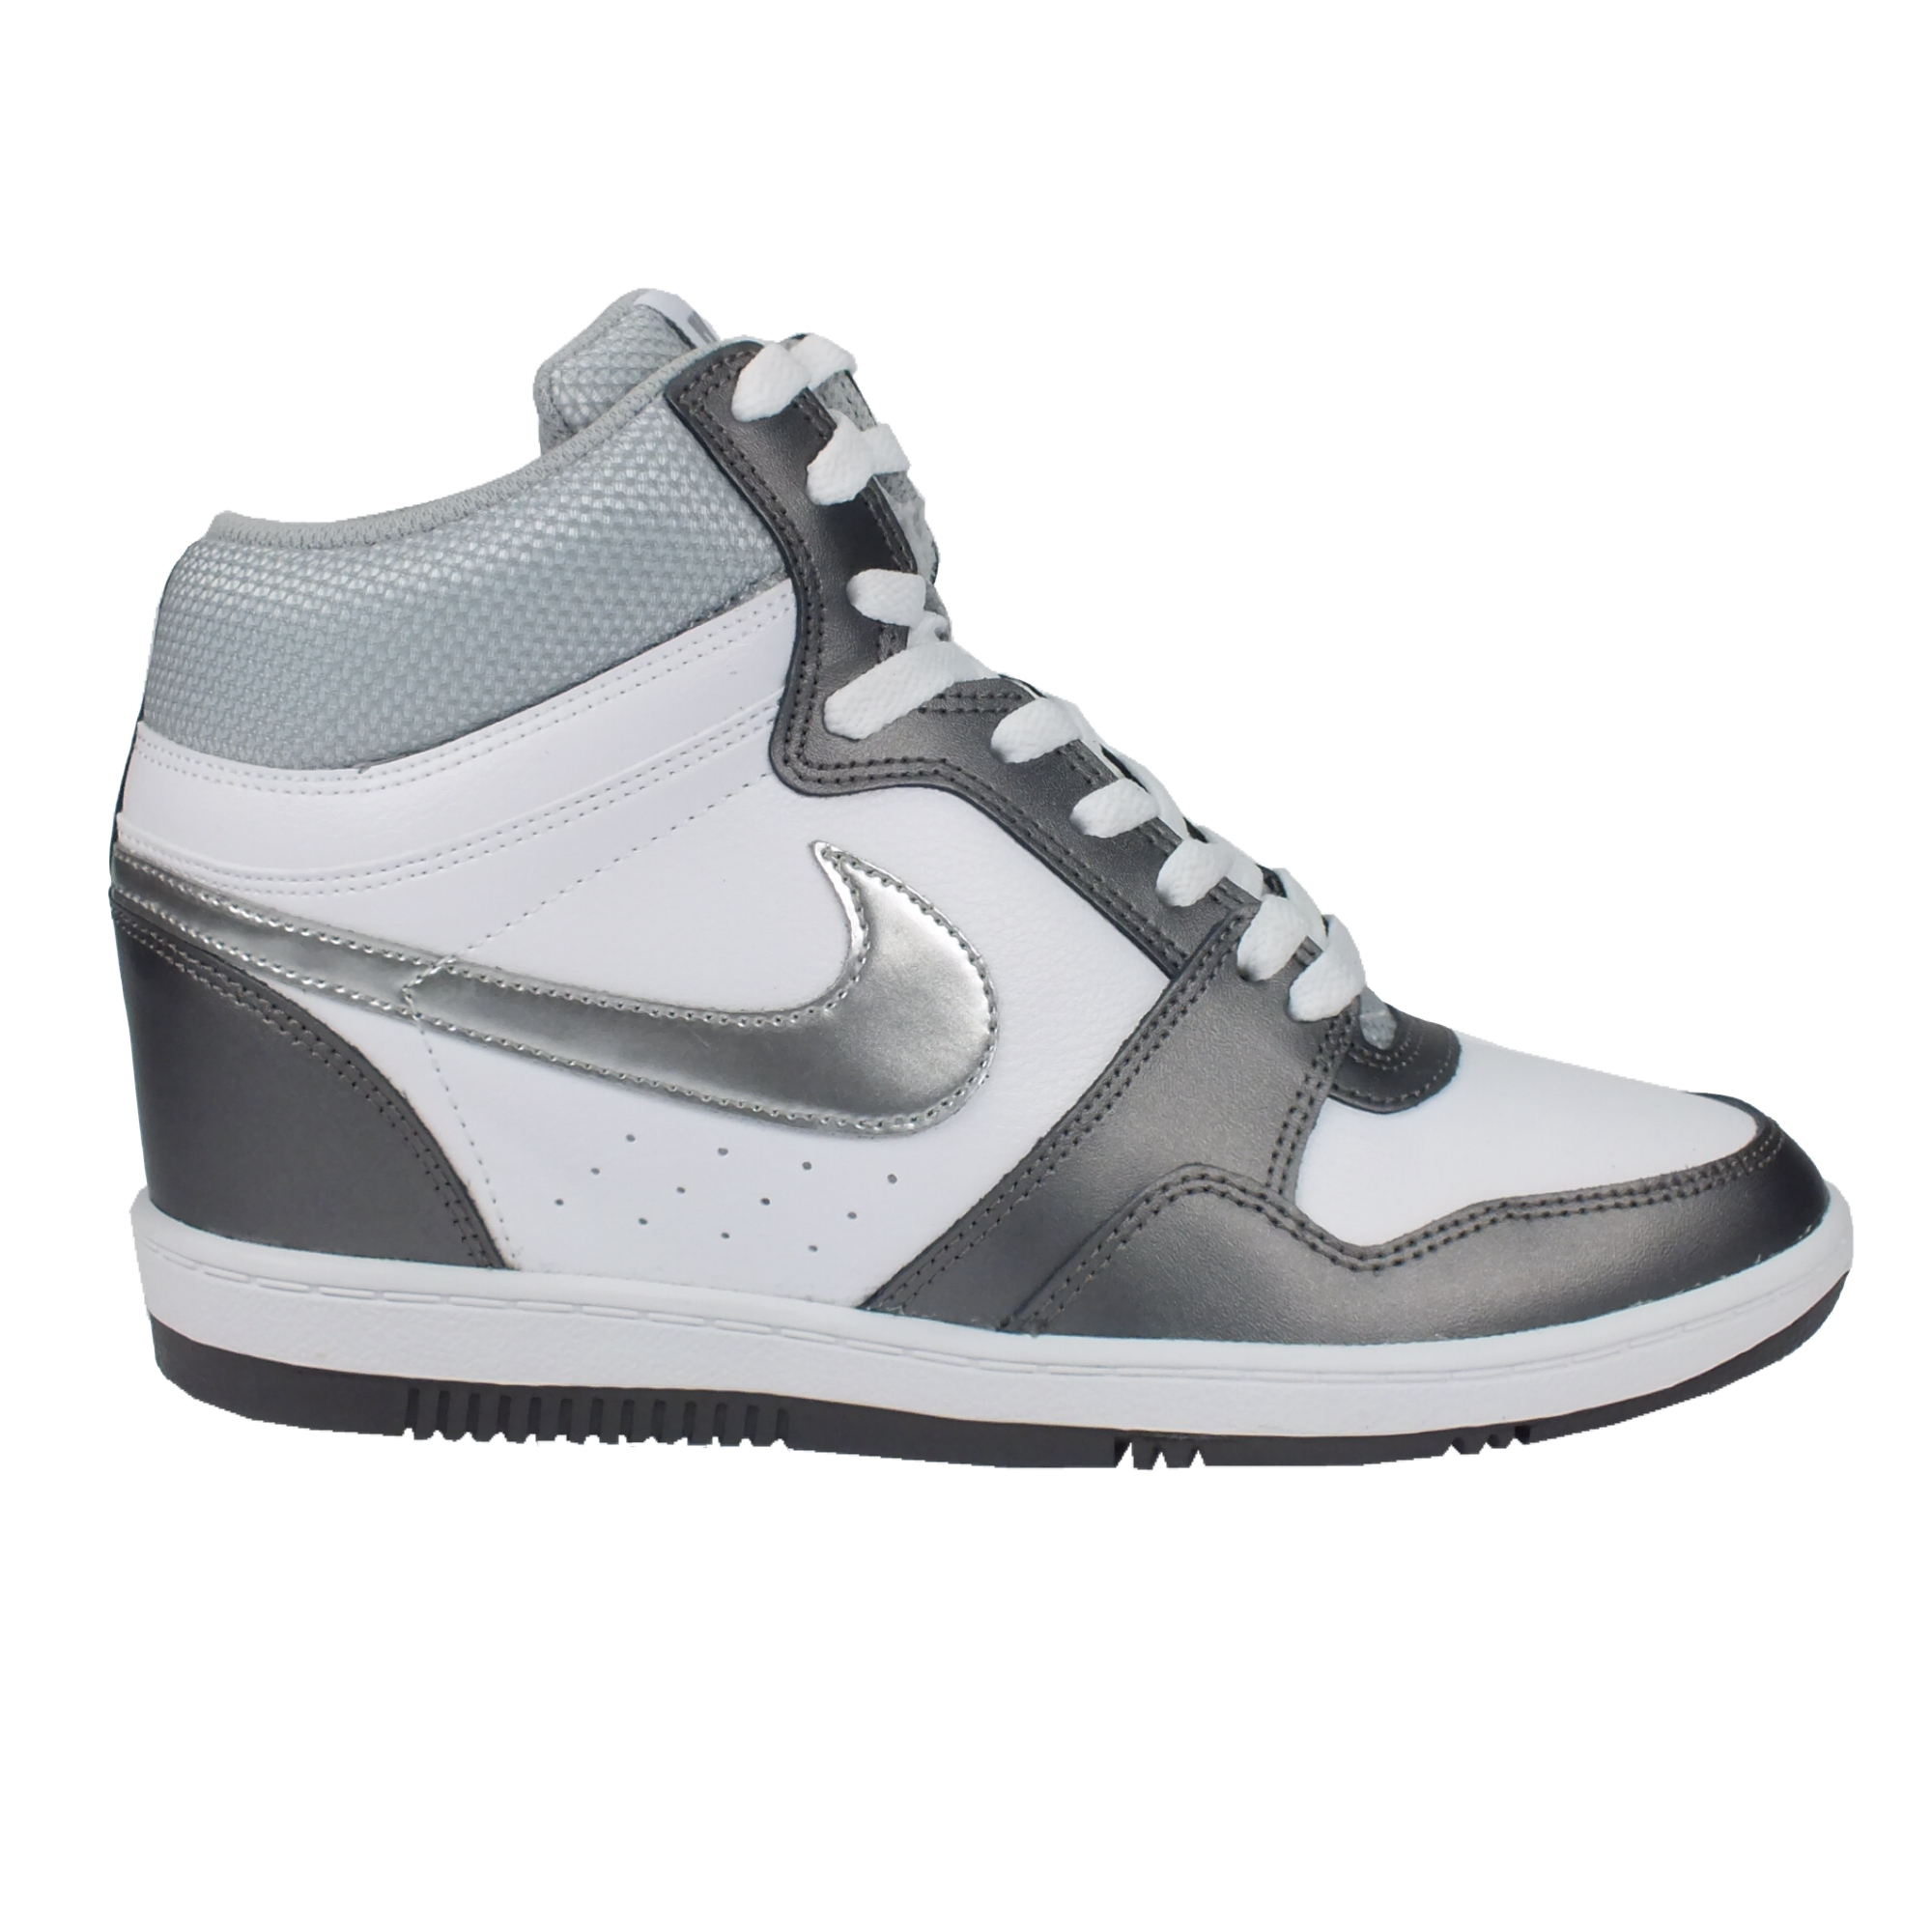 Nike Wedge Heel Sneakers - Bing images